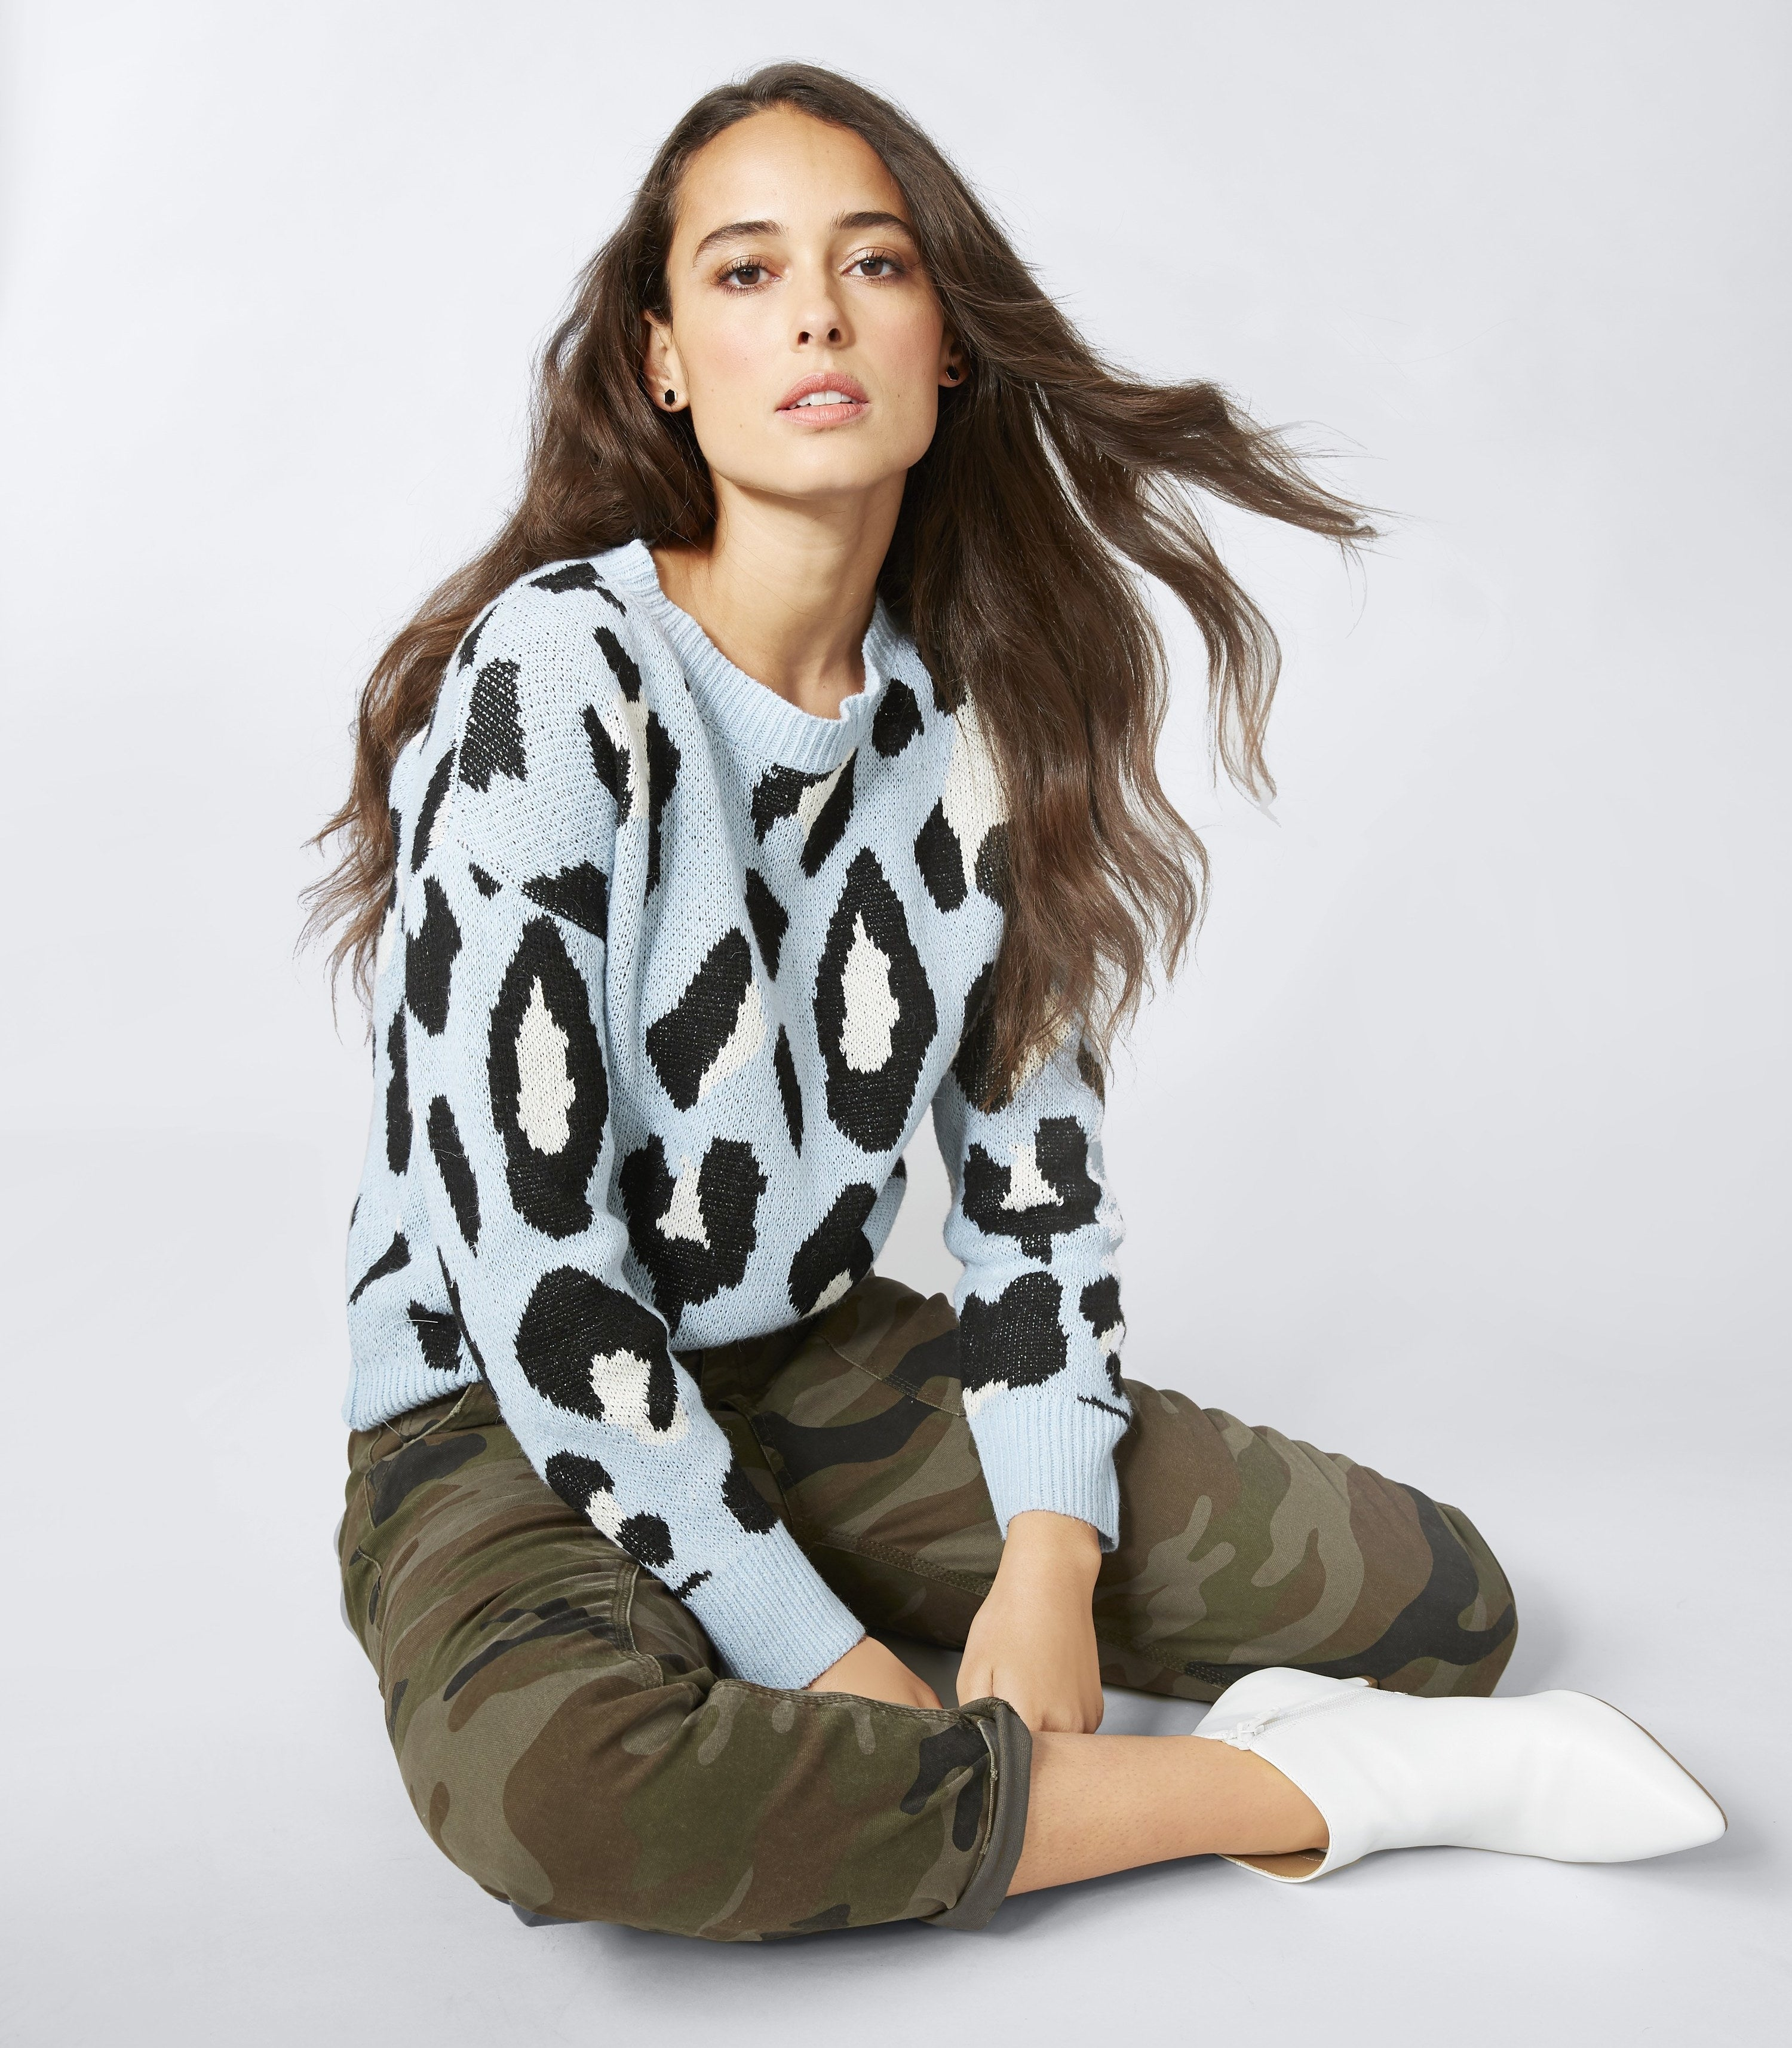 person wearing a blue leopard sweater and camo pants